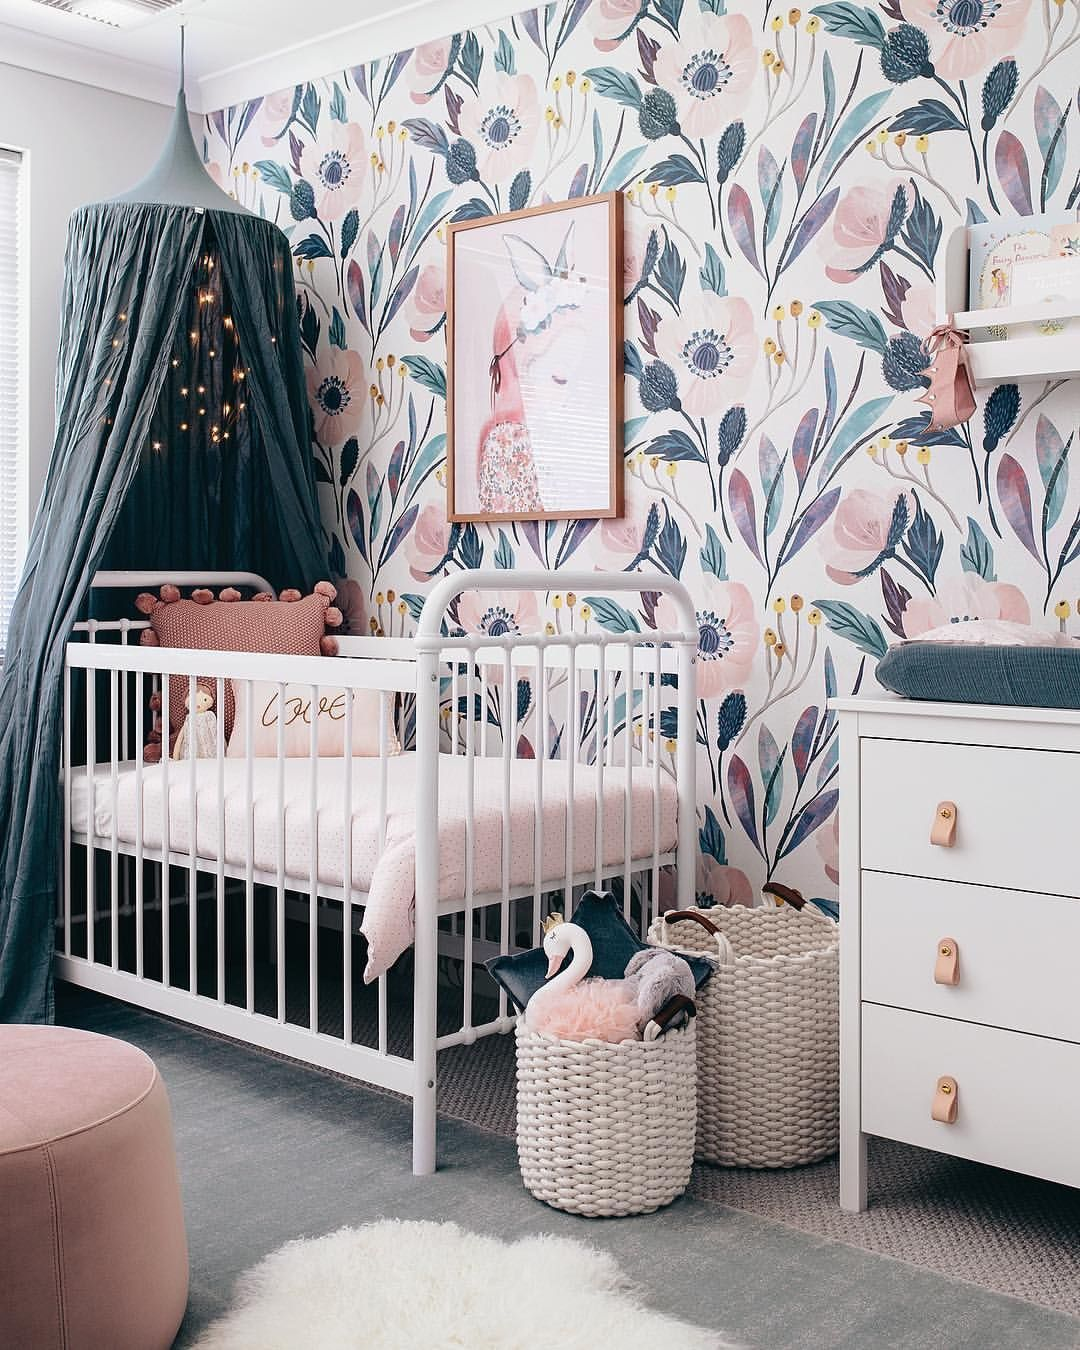 Find the best kids furniture to create na amazing nursery to your baby discover more like this at circu net